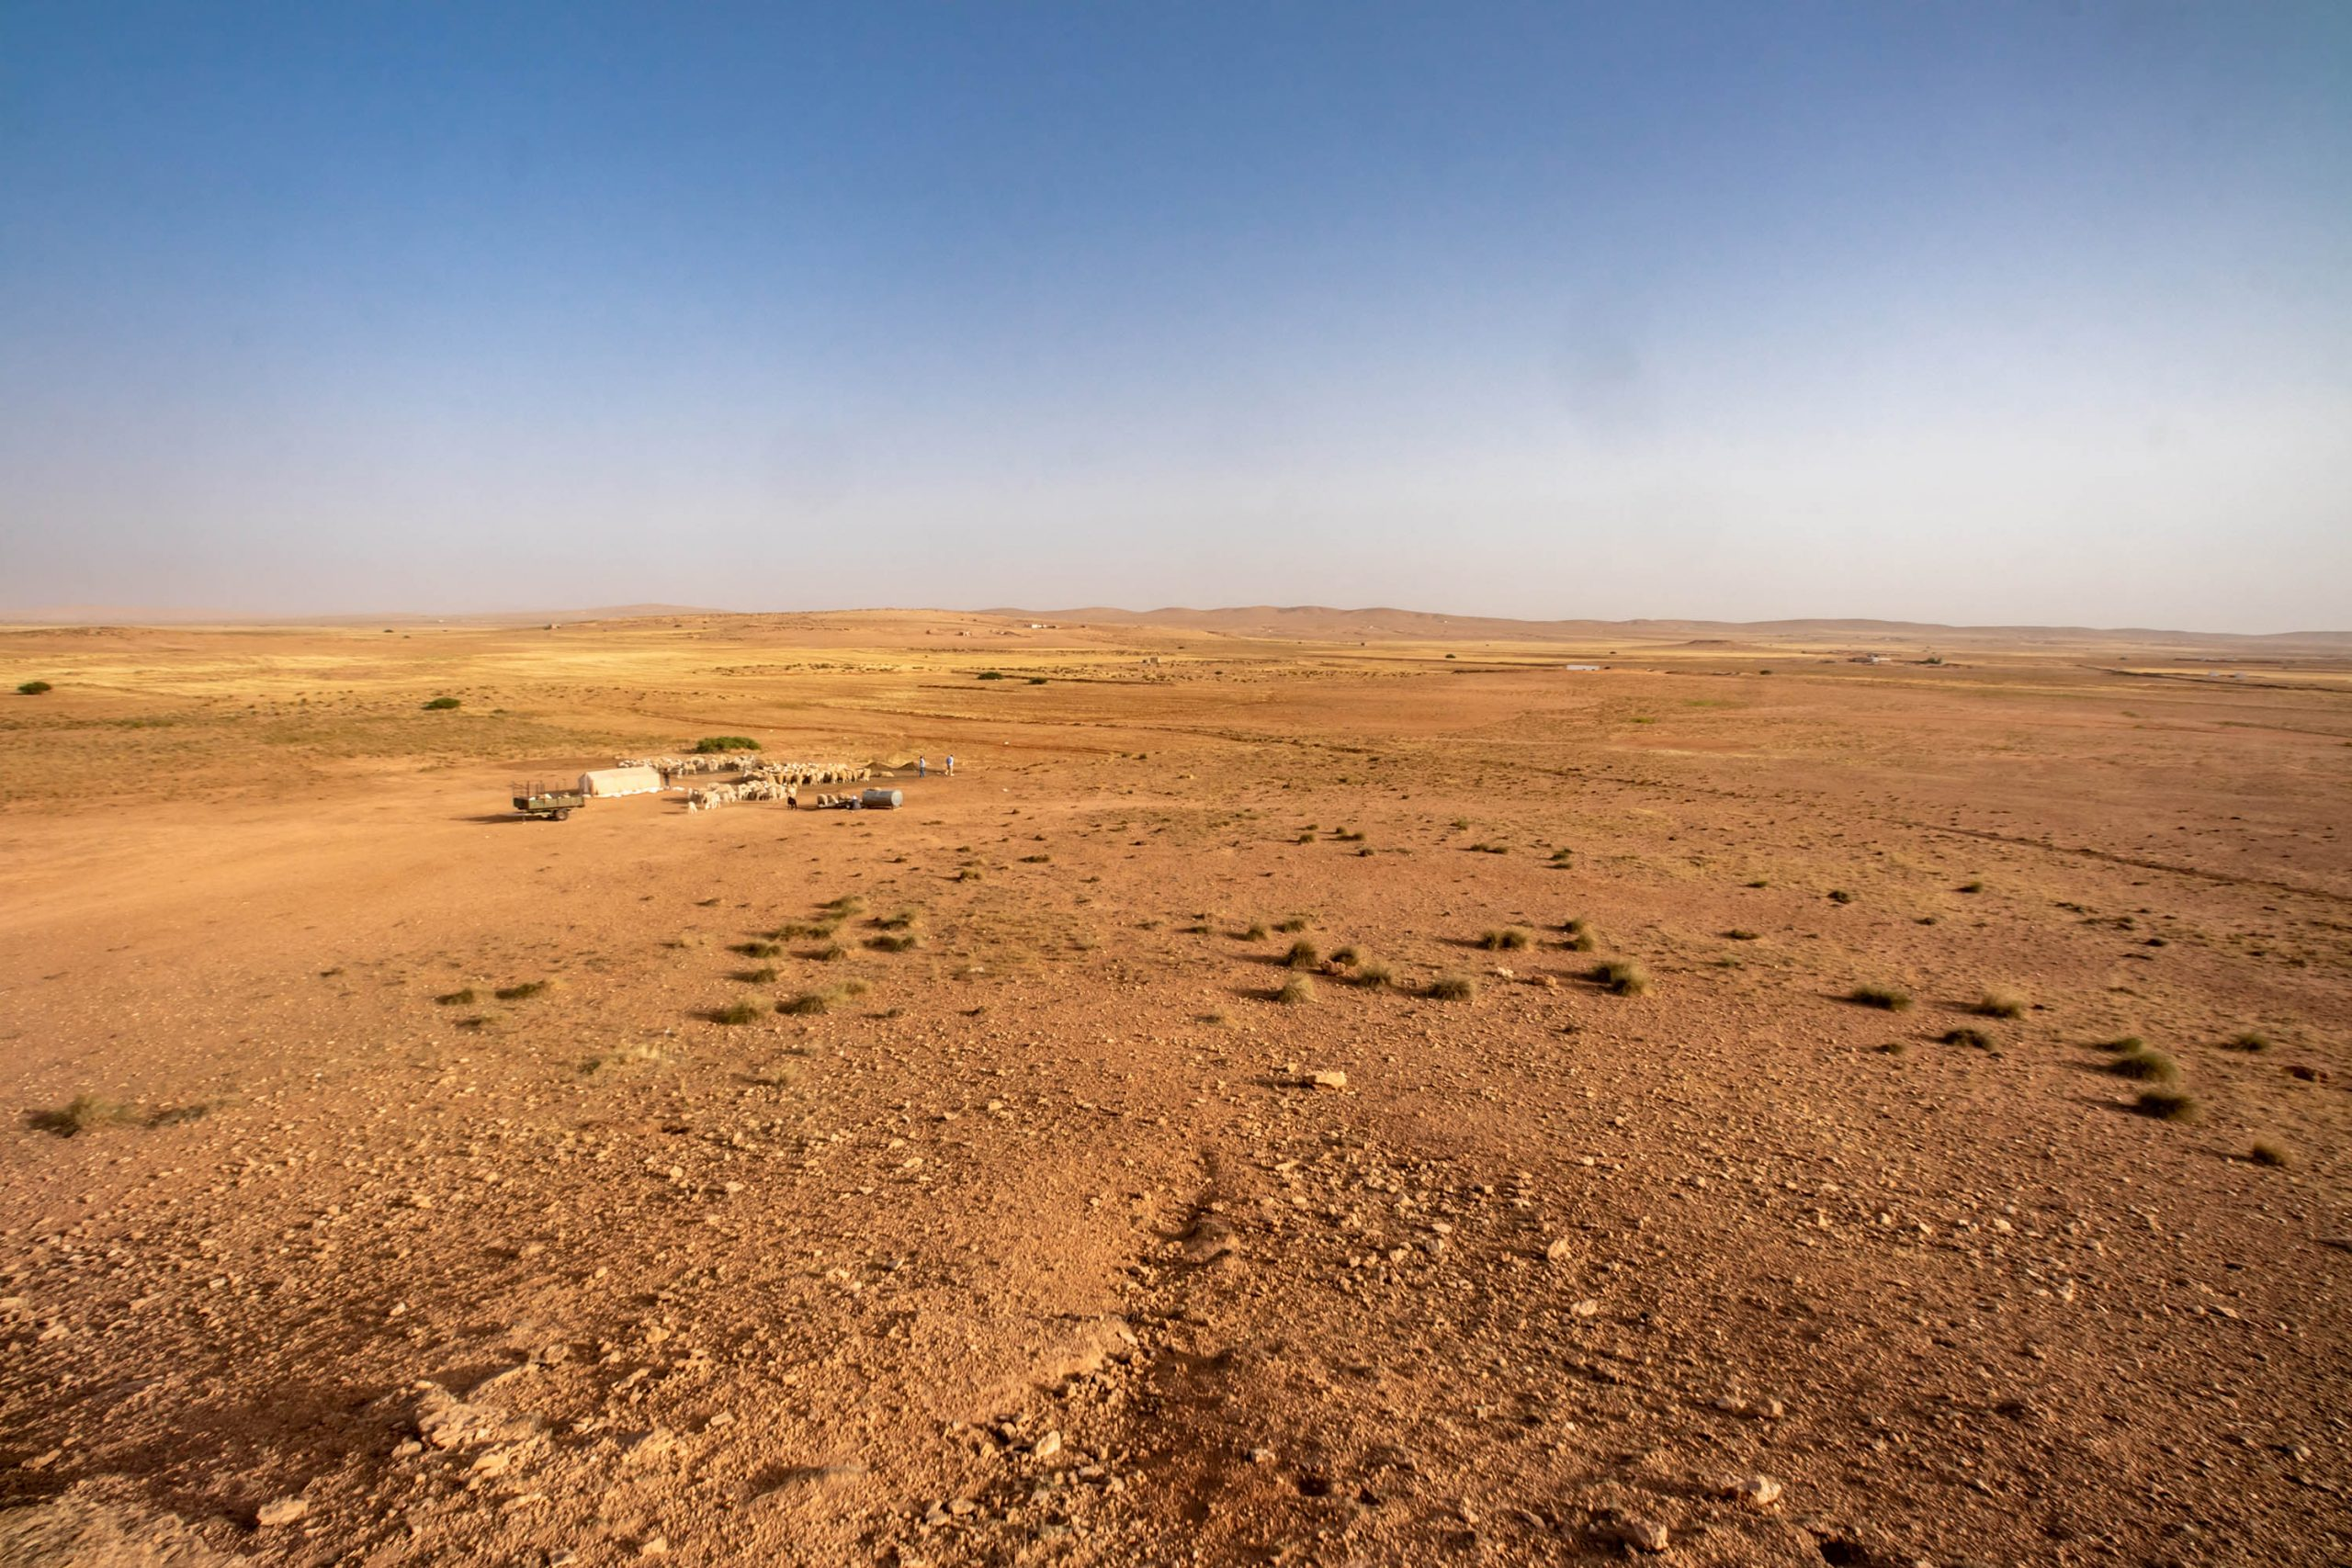 28 June 2020: The Algerian steppe between the verdant Mediterranean coast to the north and the unforgiving Sahara Desert to the south. (Photograph by Abderazak HadjTahar)